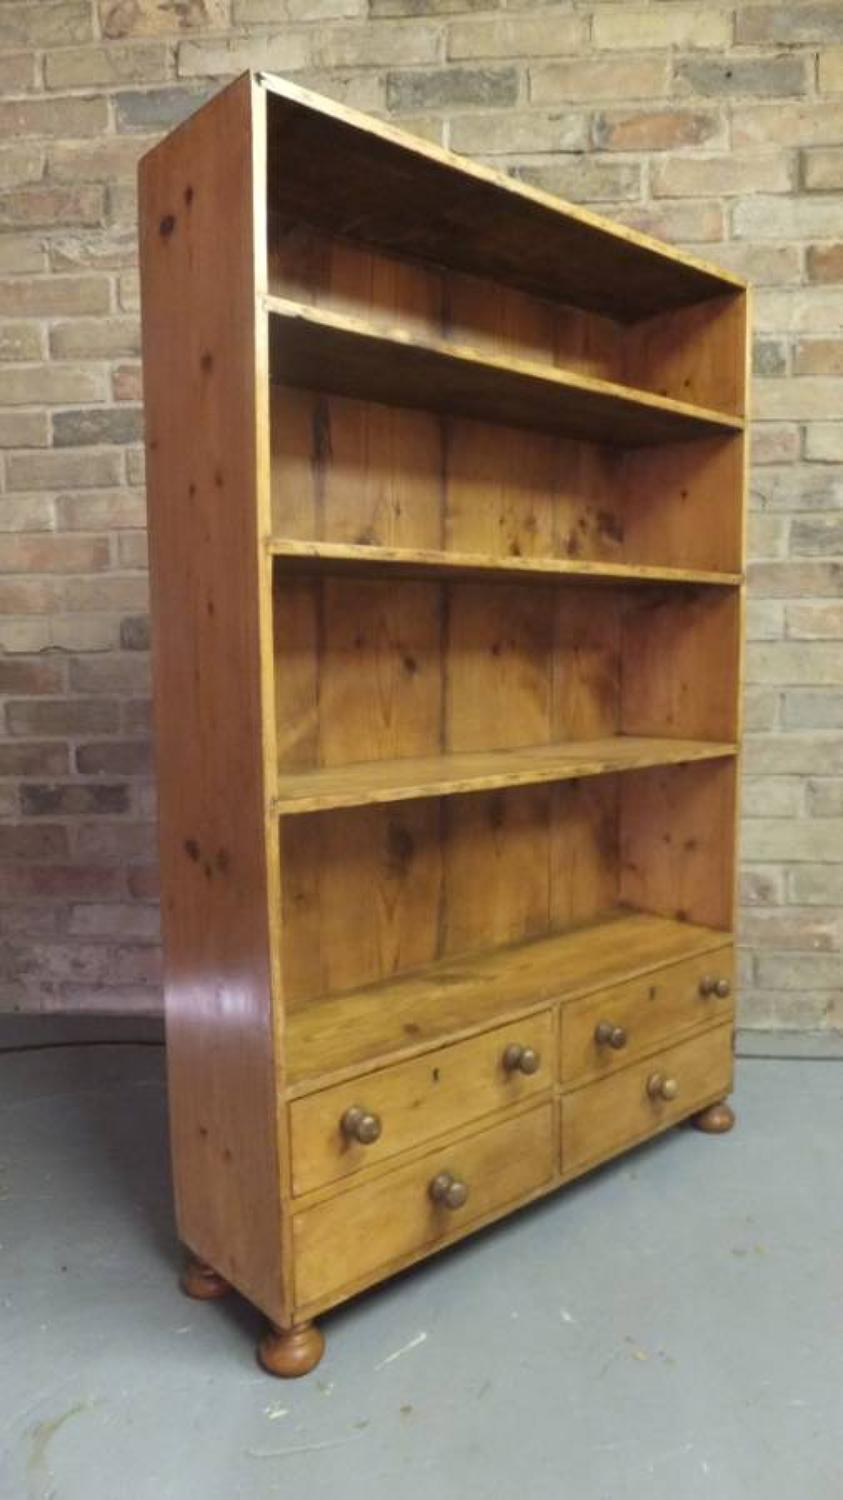 Unusual Georgian Pine Bookcase Shelves with Four Drawers